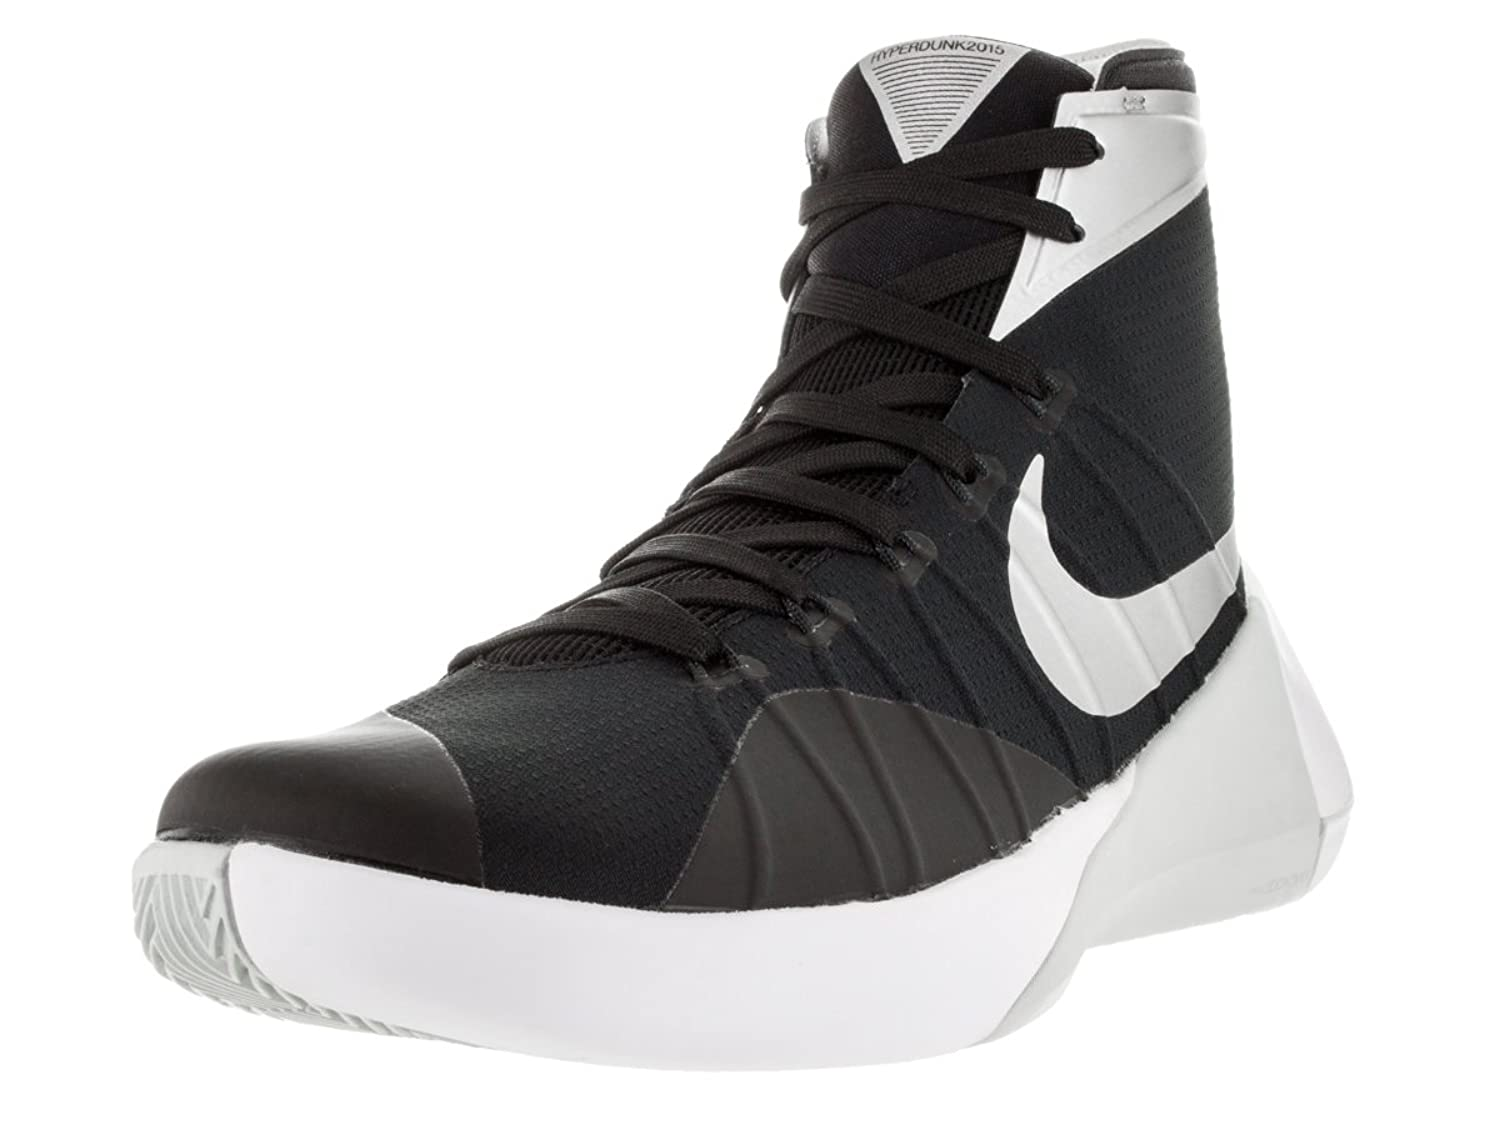 brand new 77678 92030 Amazon.com   Nike Men s Hyperdunk 2015 Basketball Sneaker   Basketball